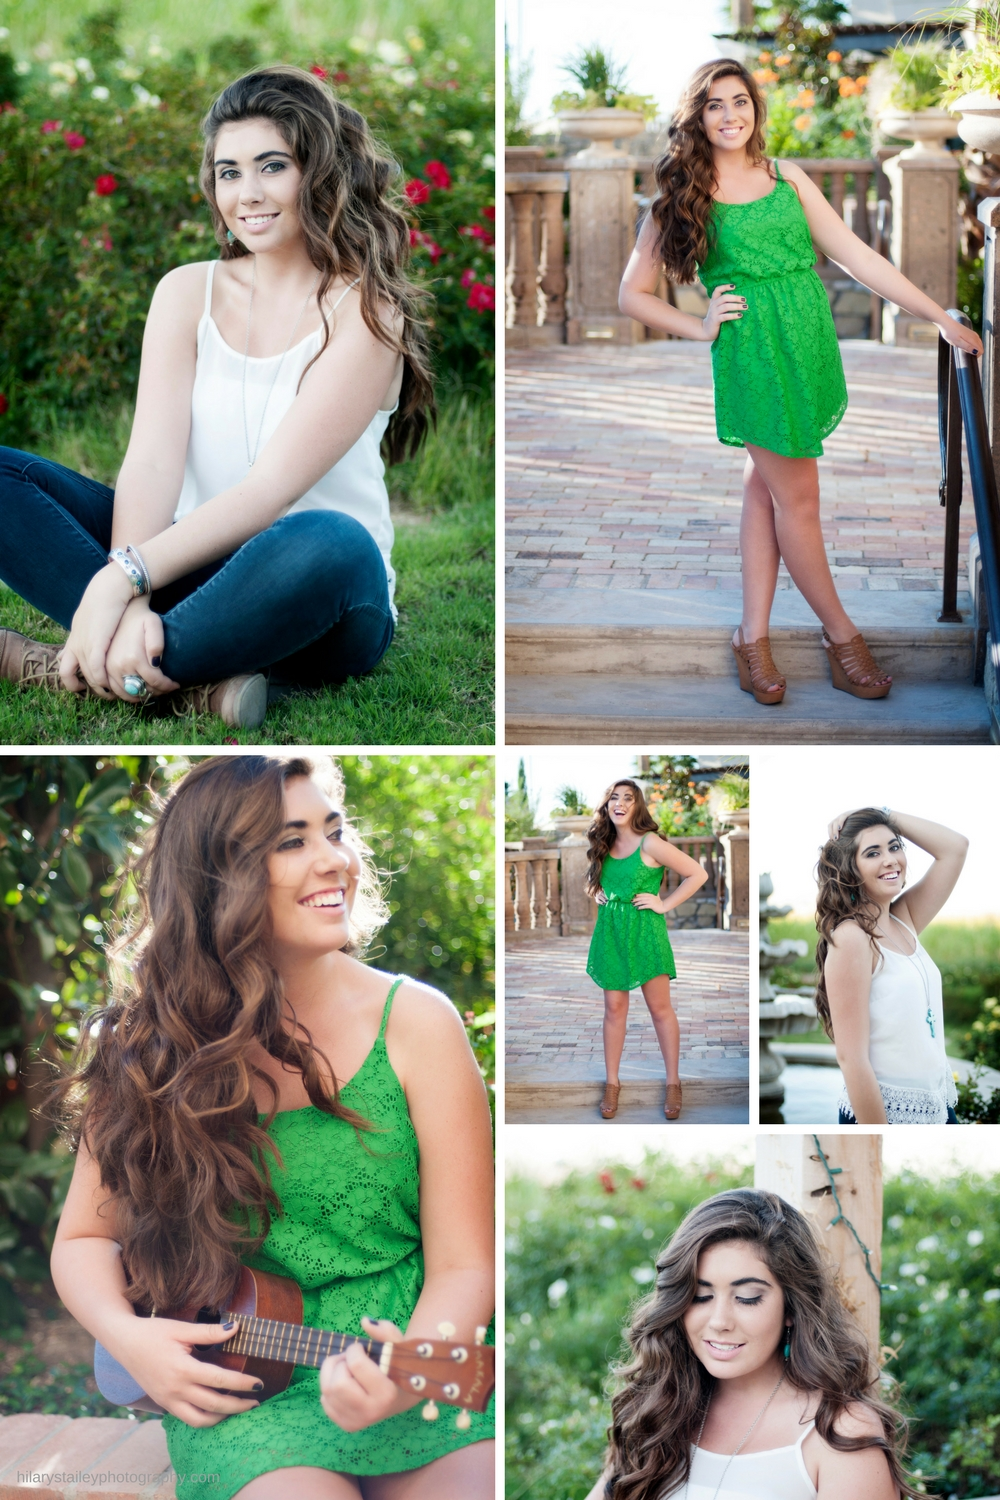 HS Senior Photography @ hilarystaileyphotography.com